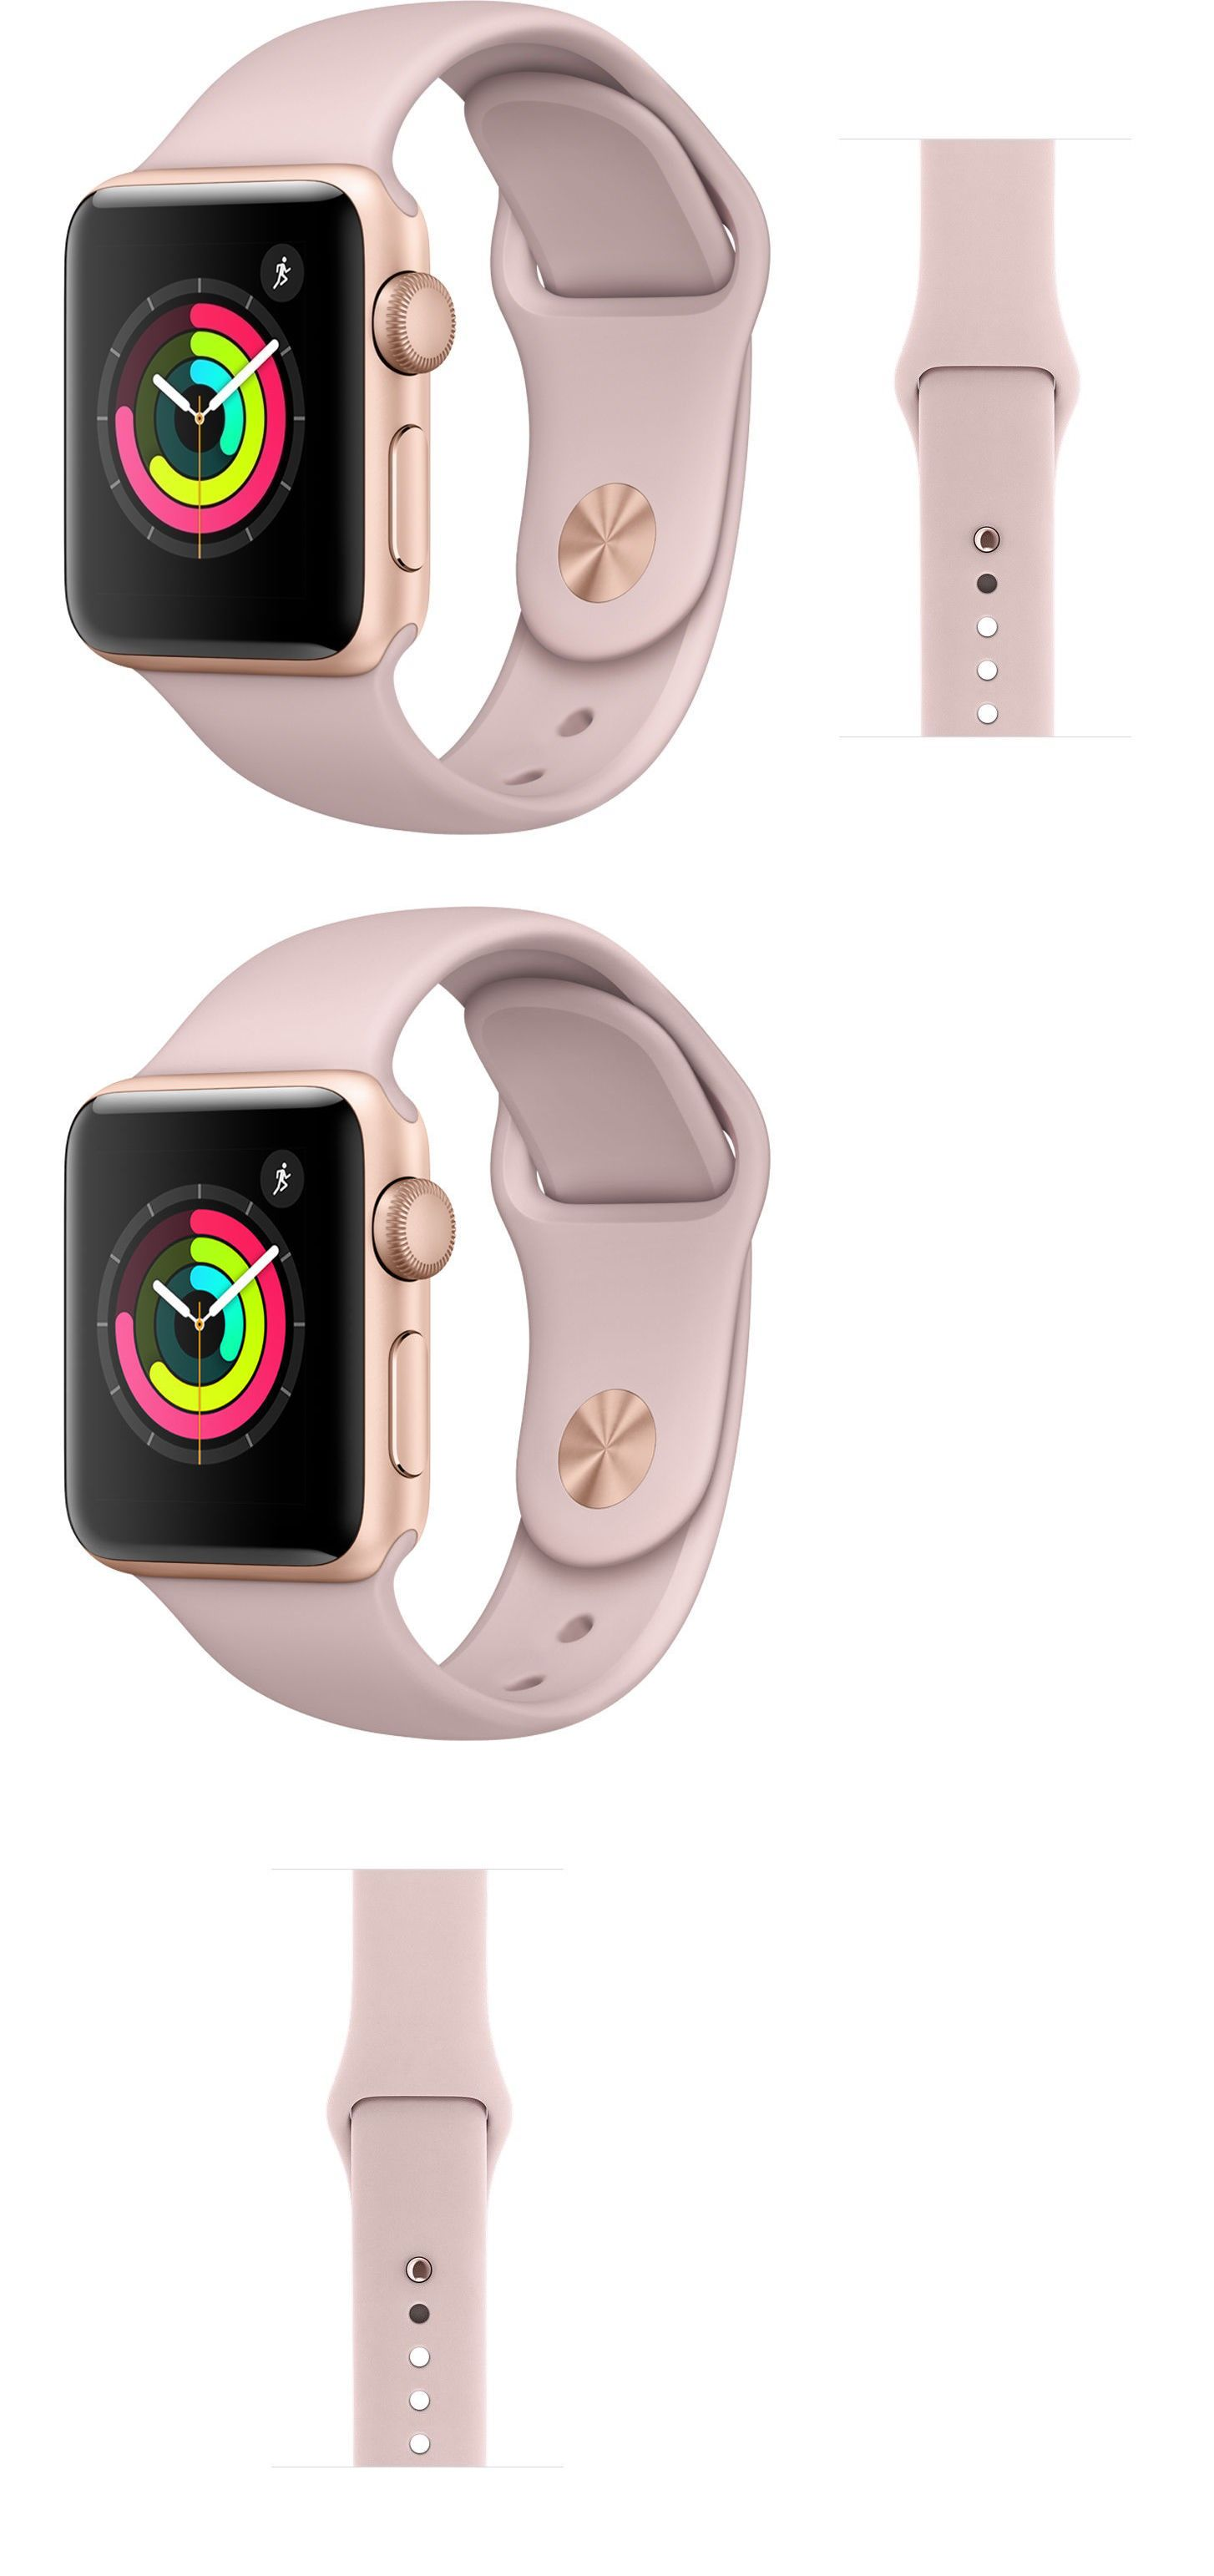 Smart Watches 178893 Apple Watch Series 3 38mm Gps Gold With Pink